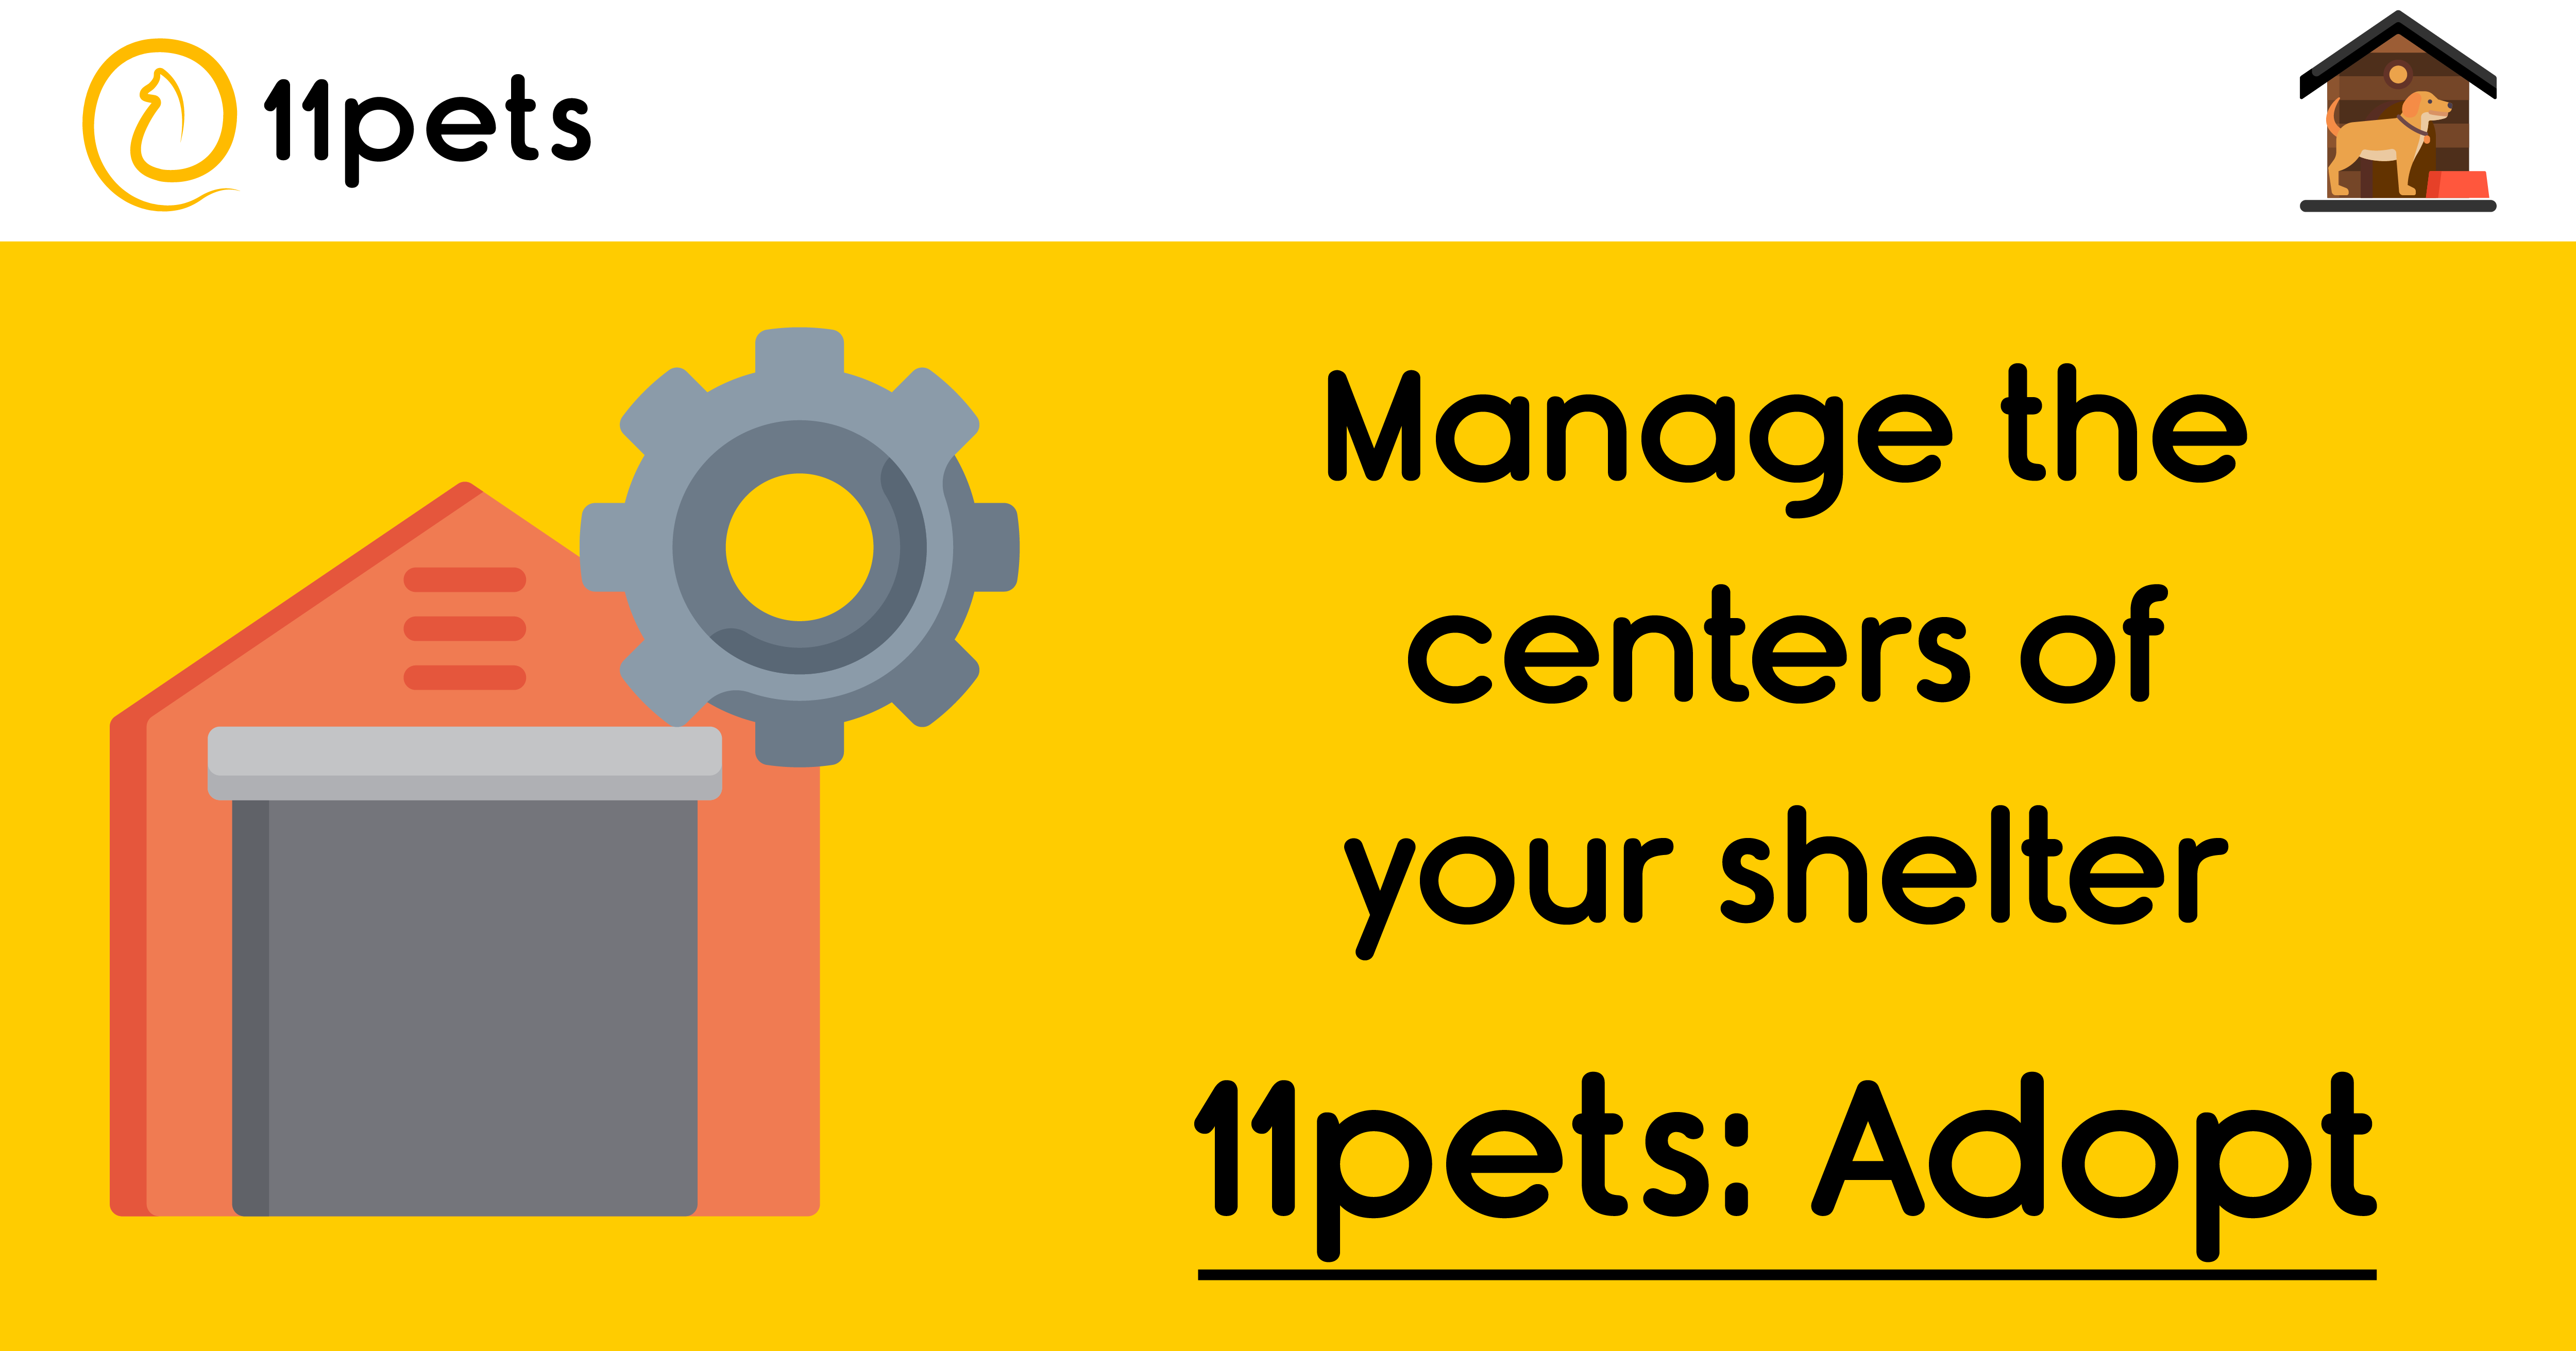 11pets: Adopt - How to manage the centers of your shelter